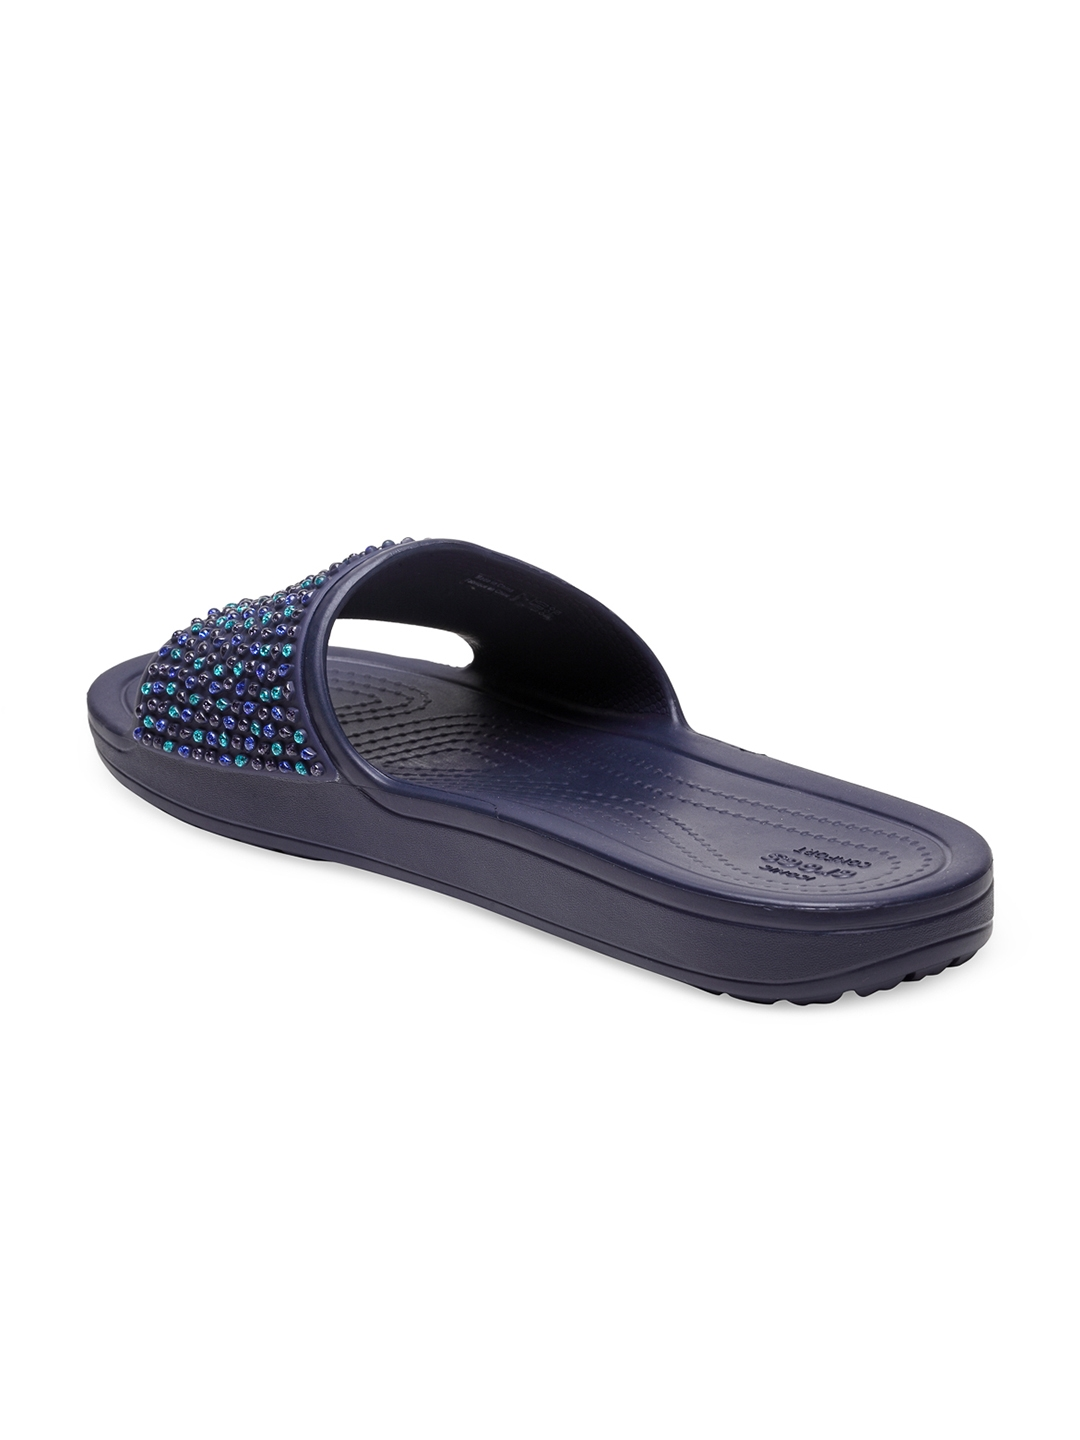 fa5e67766 Buy Crocs Women Navy Sloane Embellished Slides - Flip Flops for ...